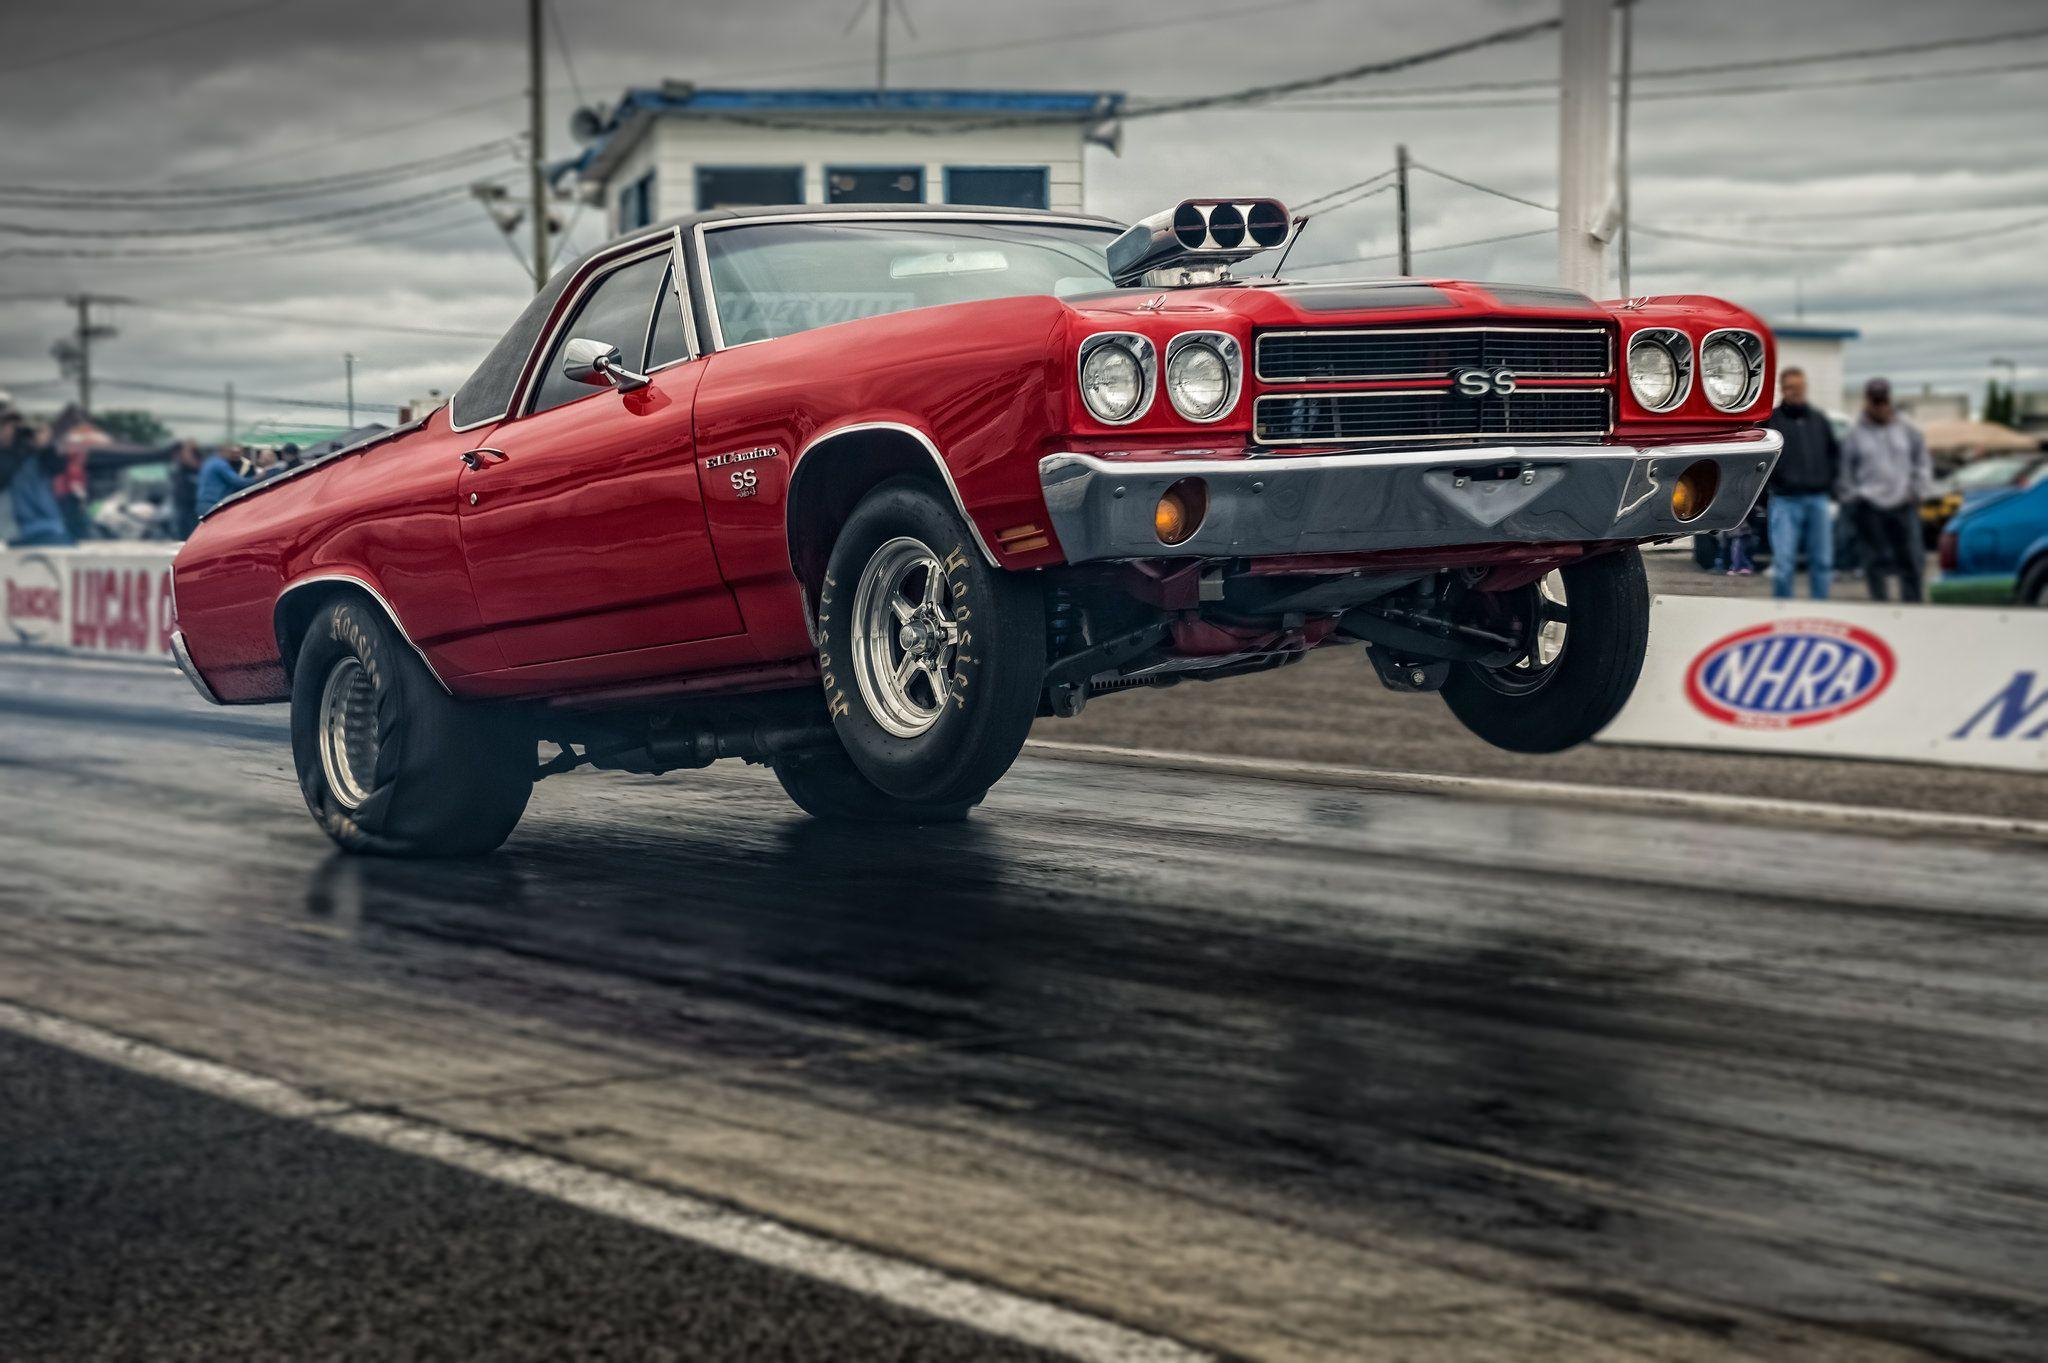 Download wallpapers chevrolet, el camino, ss, muscle car, muscle